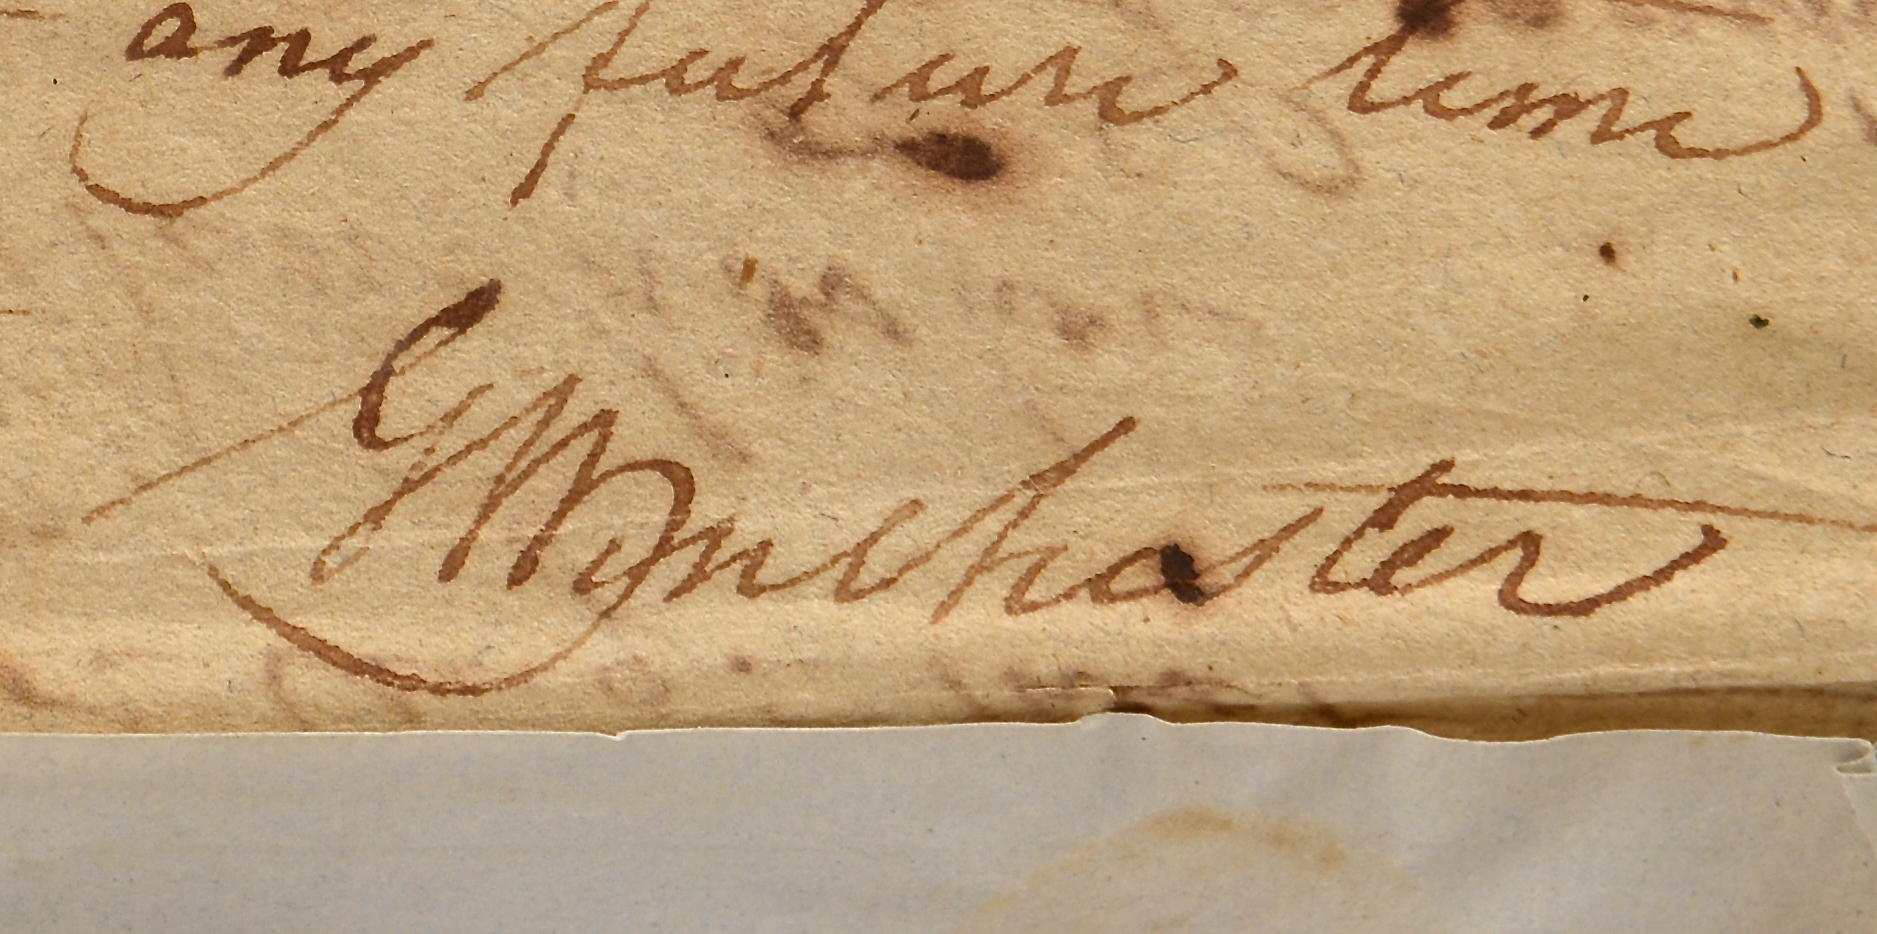 Lot 205: Winchester Revolutionary War Account Book, 1779-1804